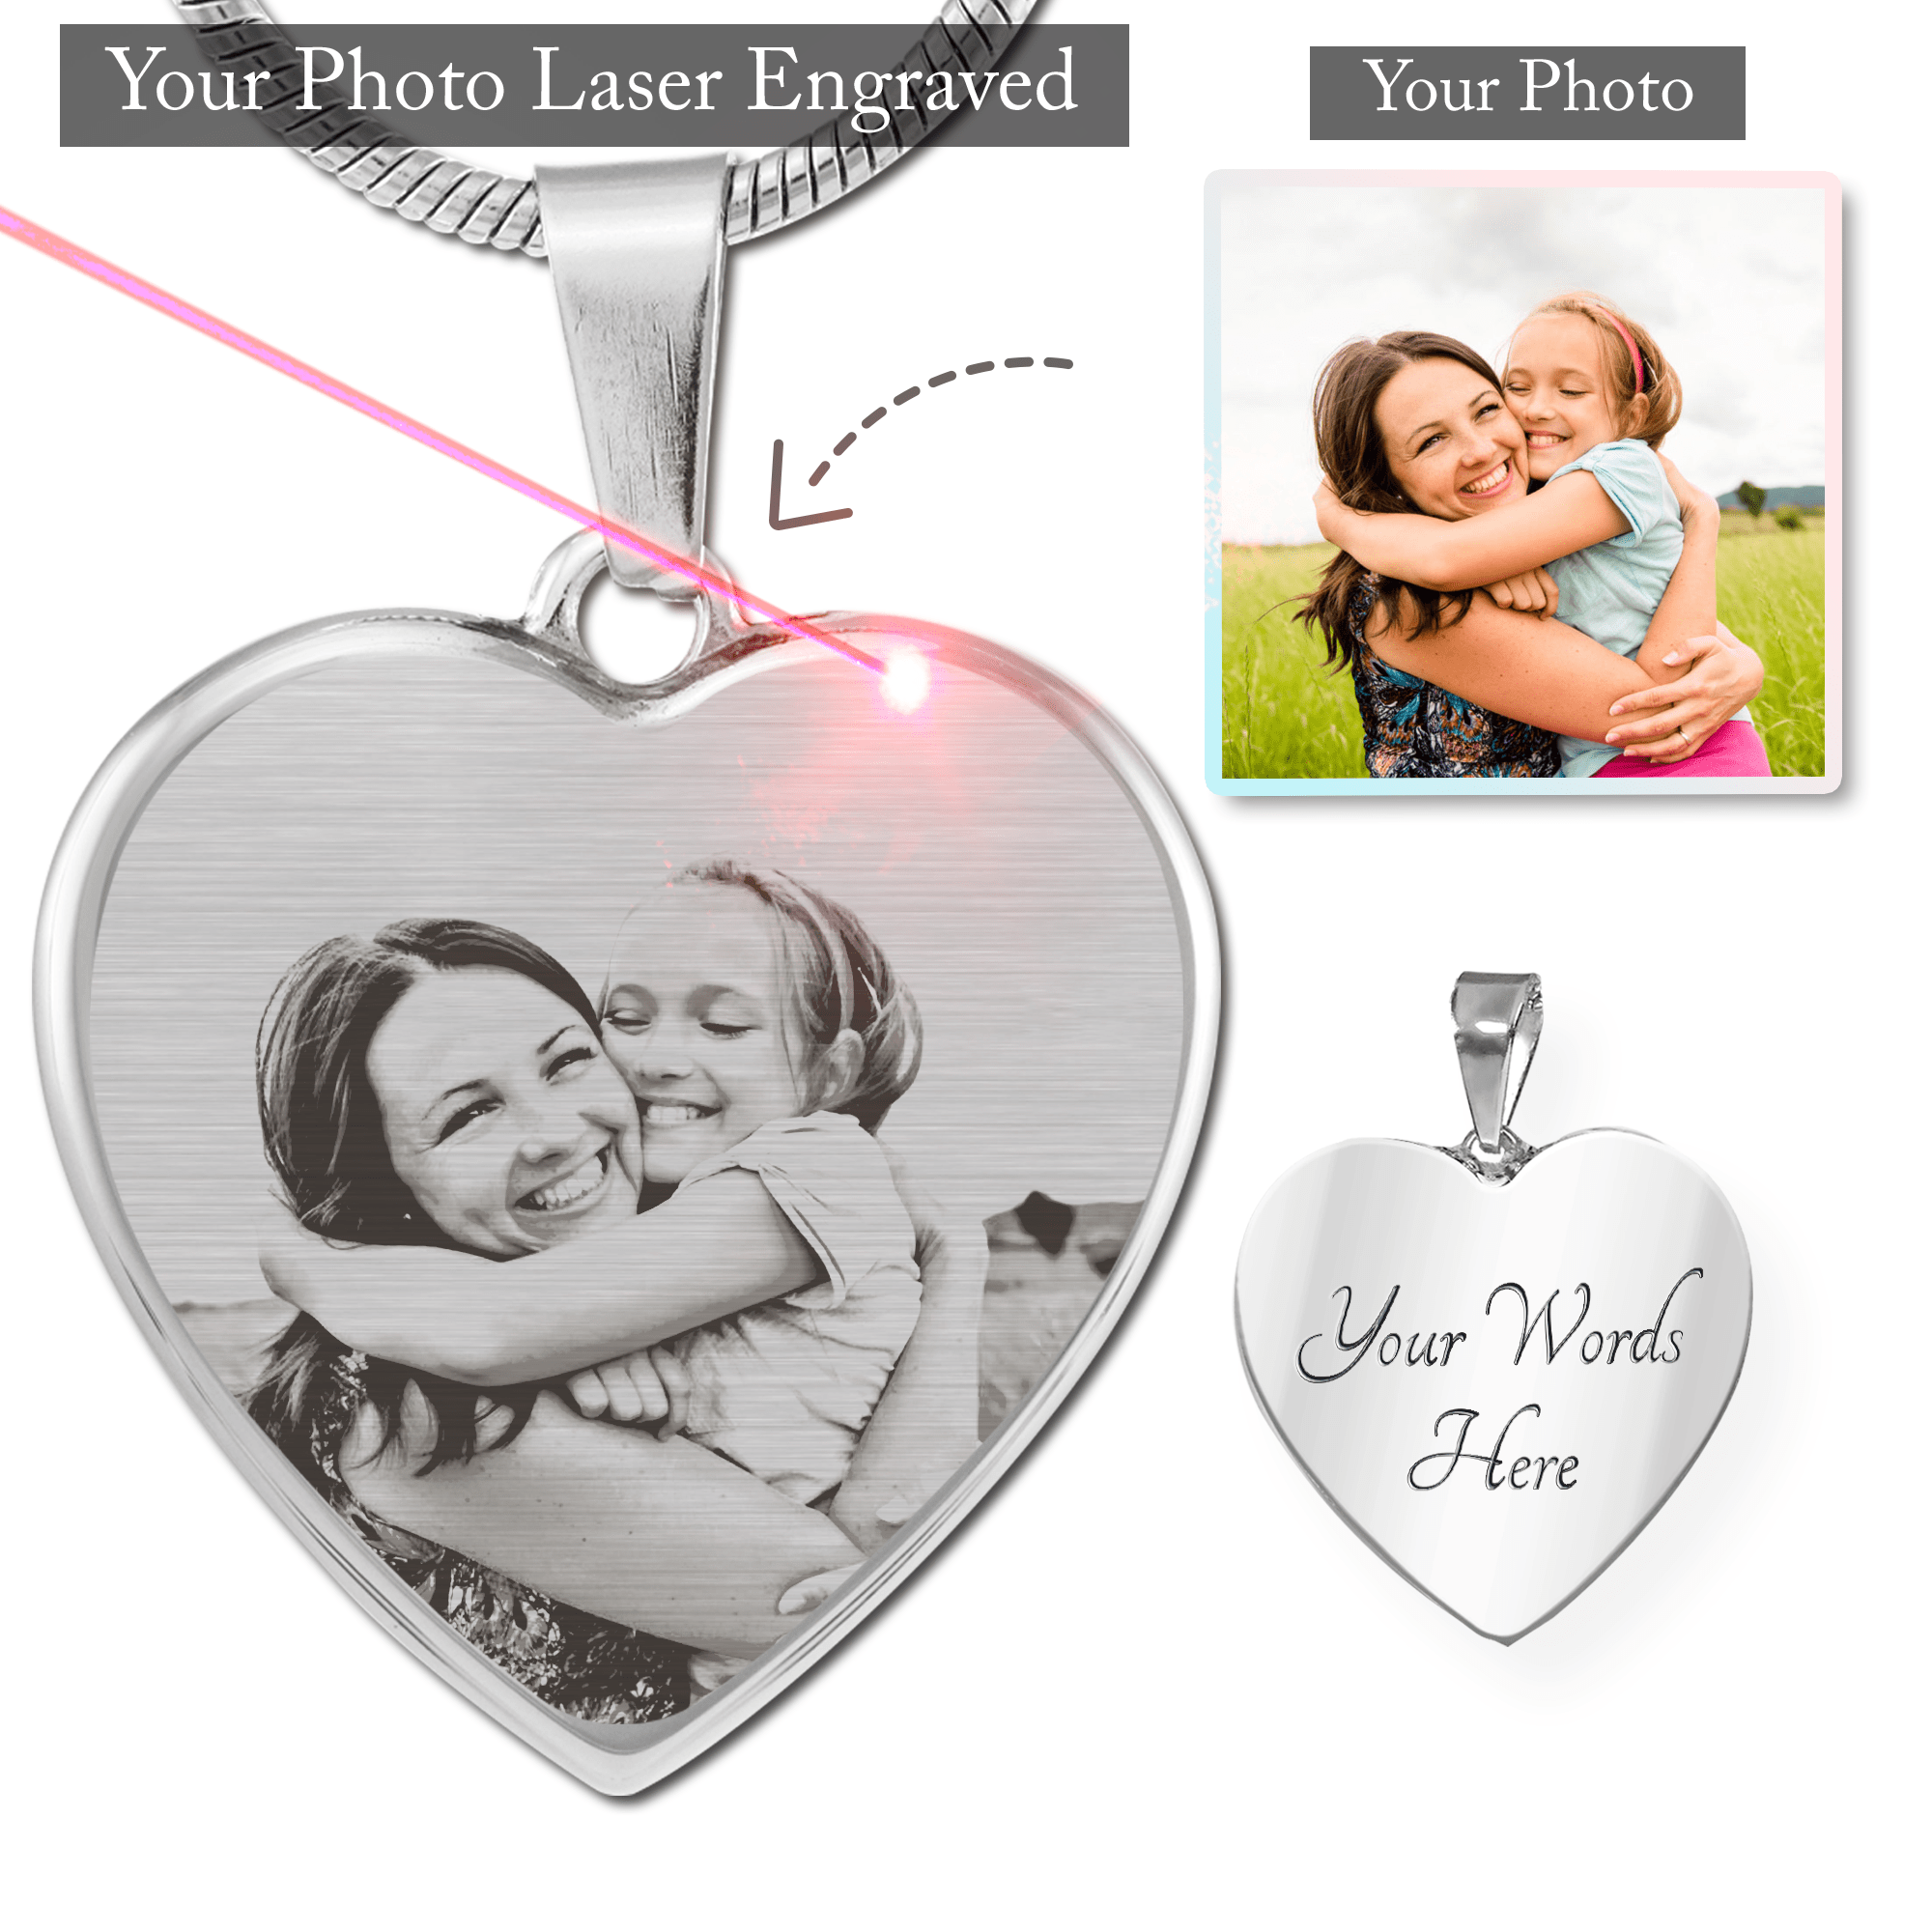 Personalized Photo Etched Necklace - Custom Photo & Engraving - Best Selling Mothers Day Gift - Heart Charm